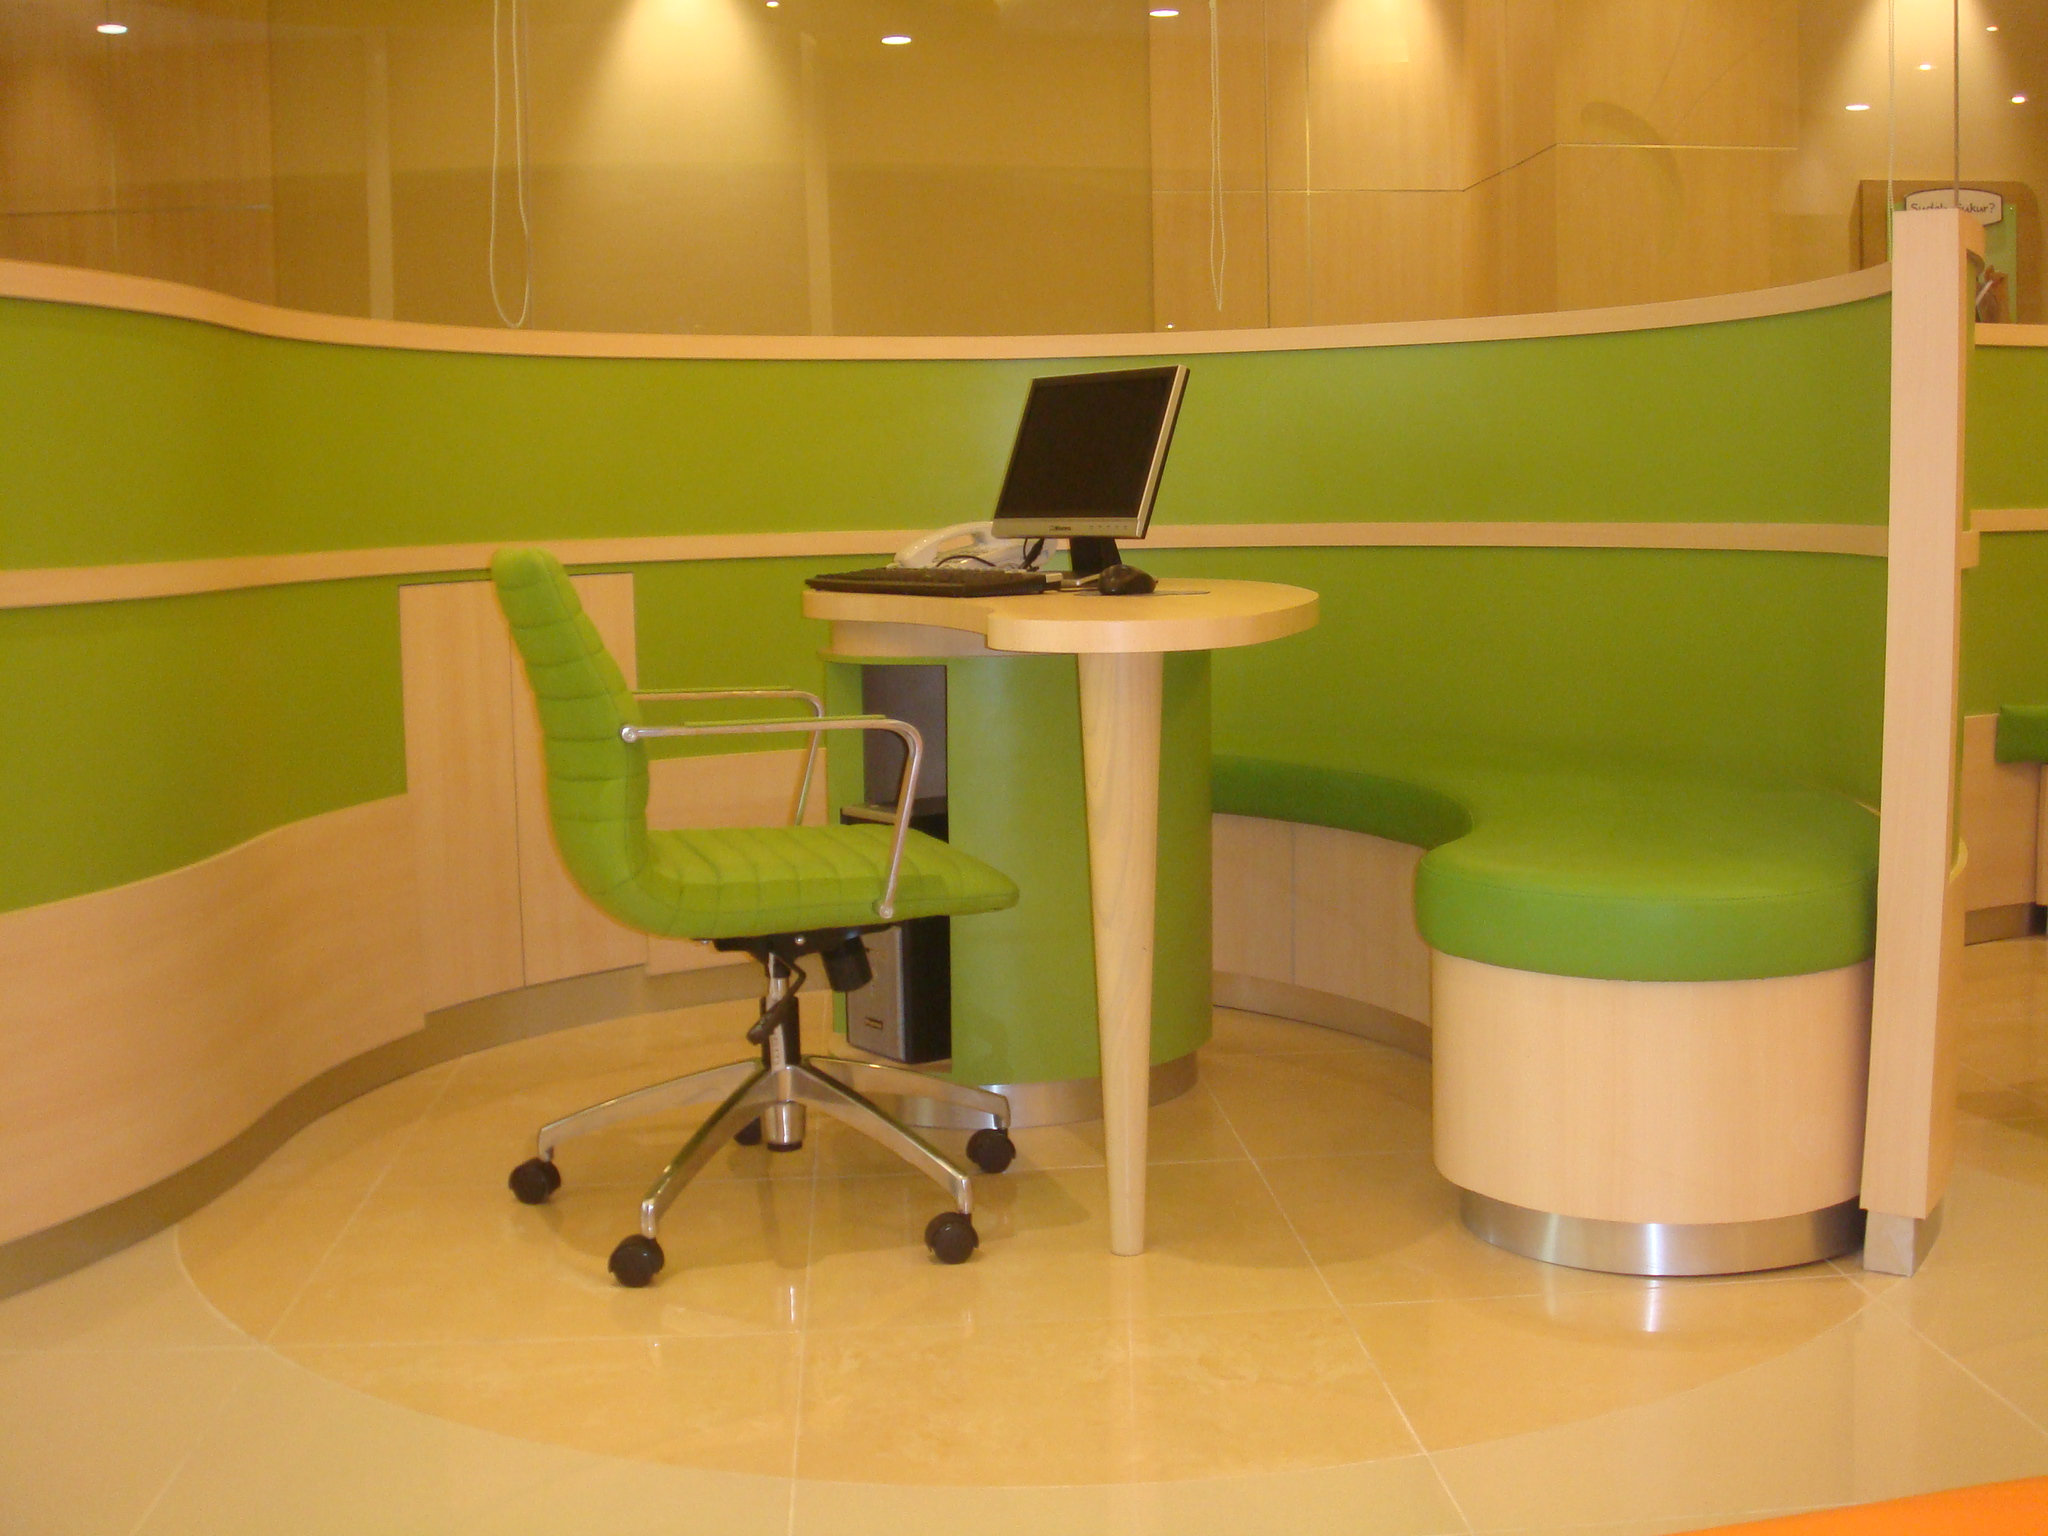 ergonomic chair jakarta revolving chennai projects bequem kreasindo pratama office furniture indonesia